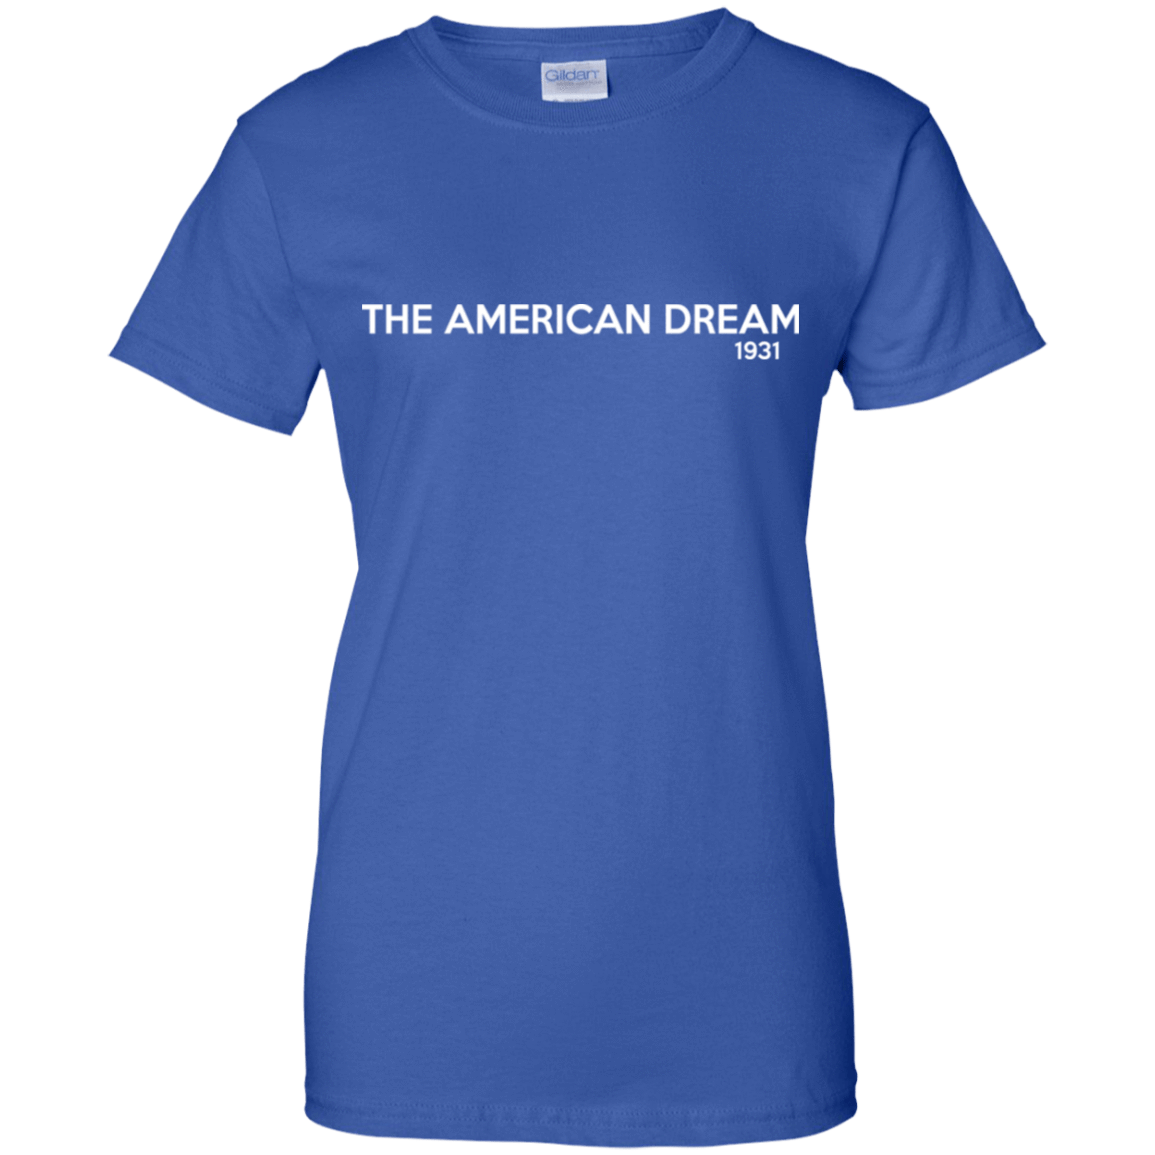 The American Dream 1931 939-9264-72086248-44807 - Tee Ript